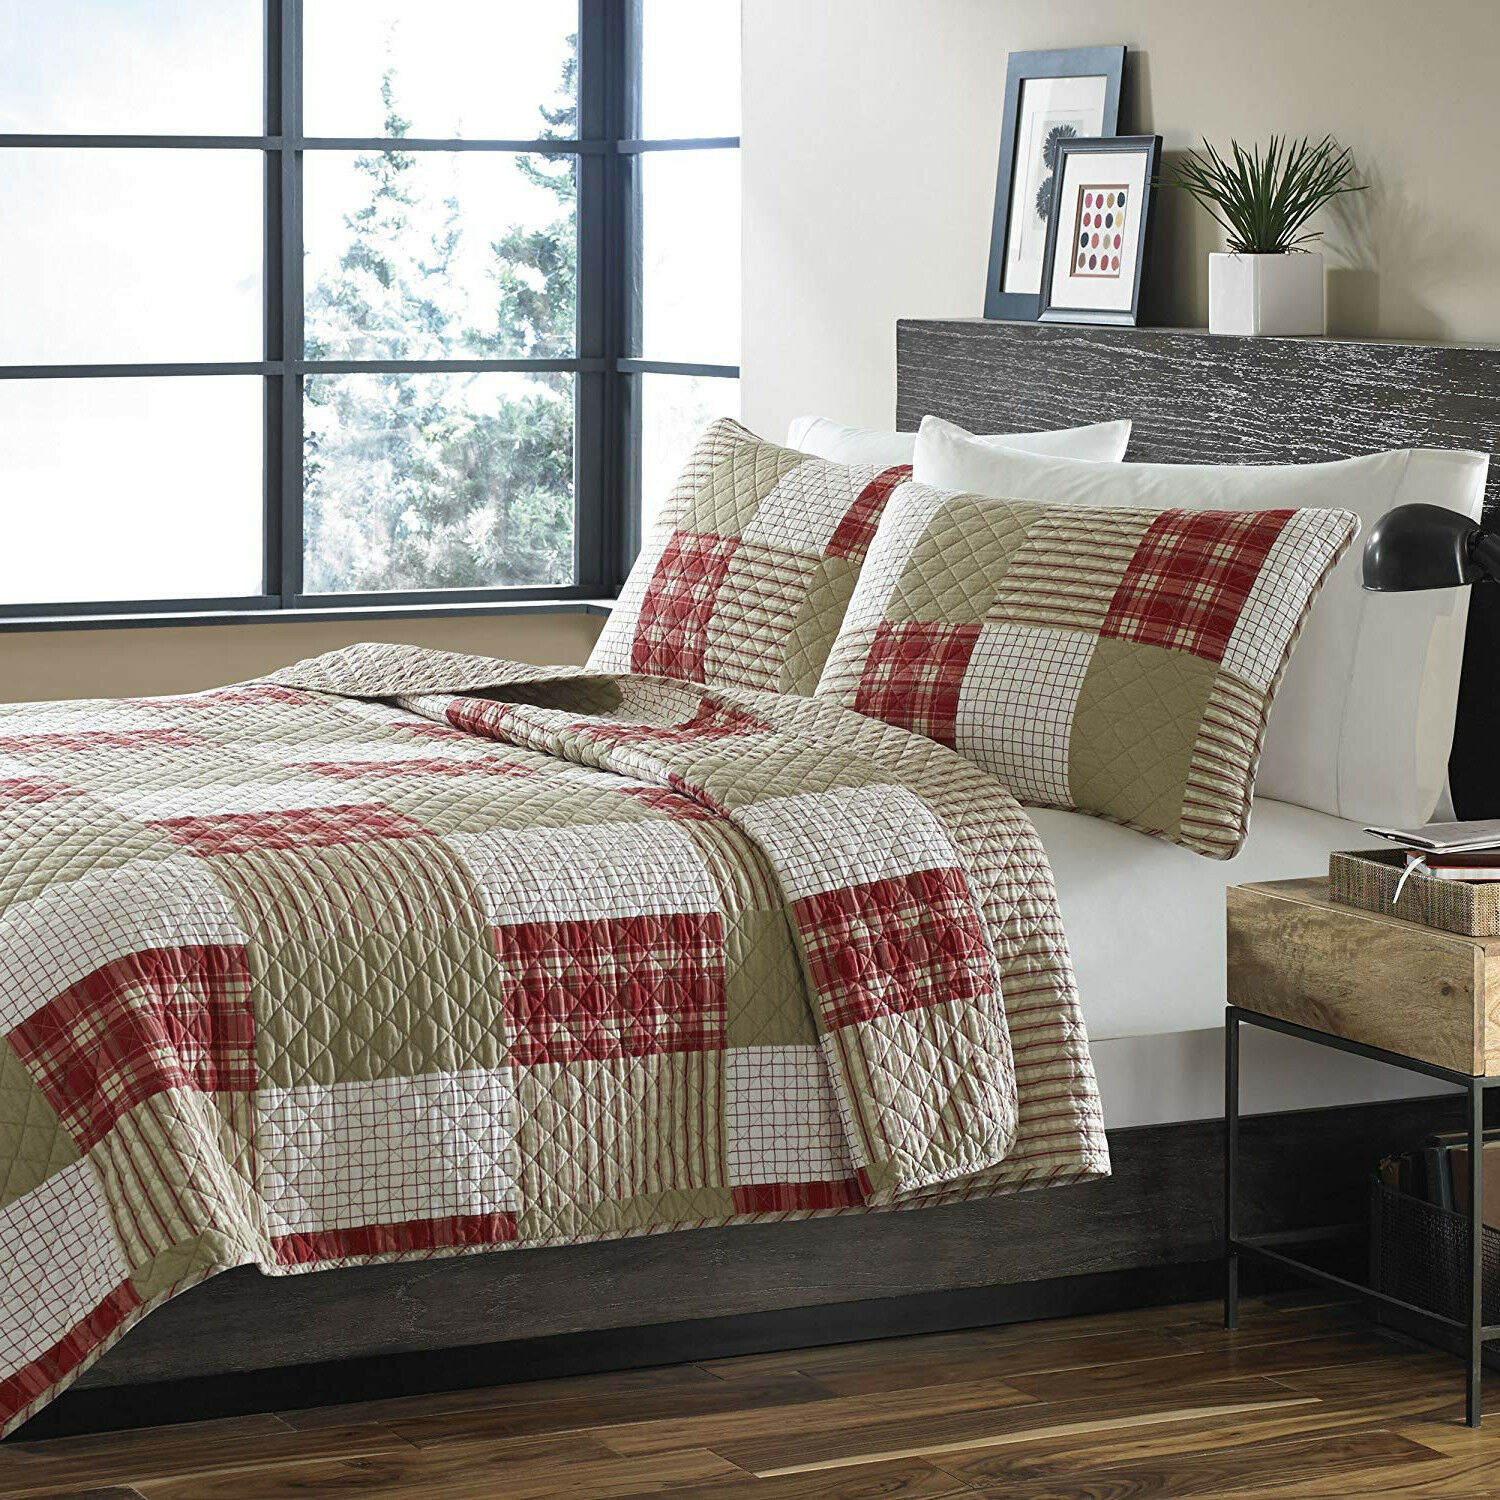 100% Cotton rosso Khaki Quilt Patchwork Plaid Coverlet King Queen 3 pcs